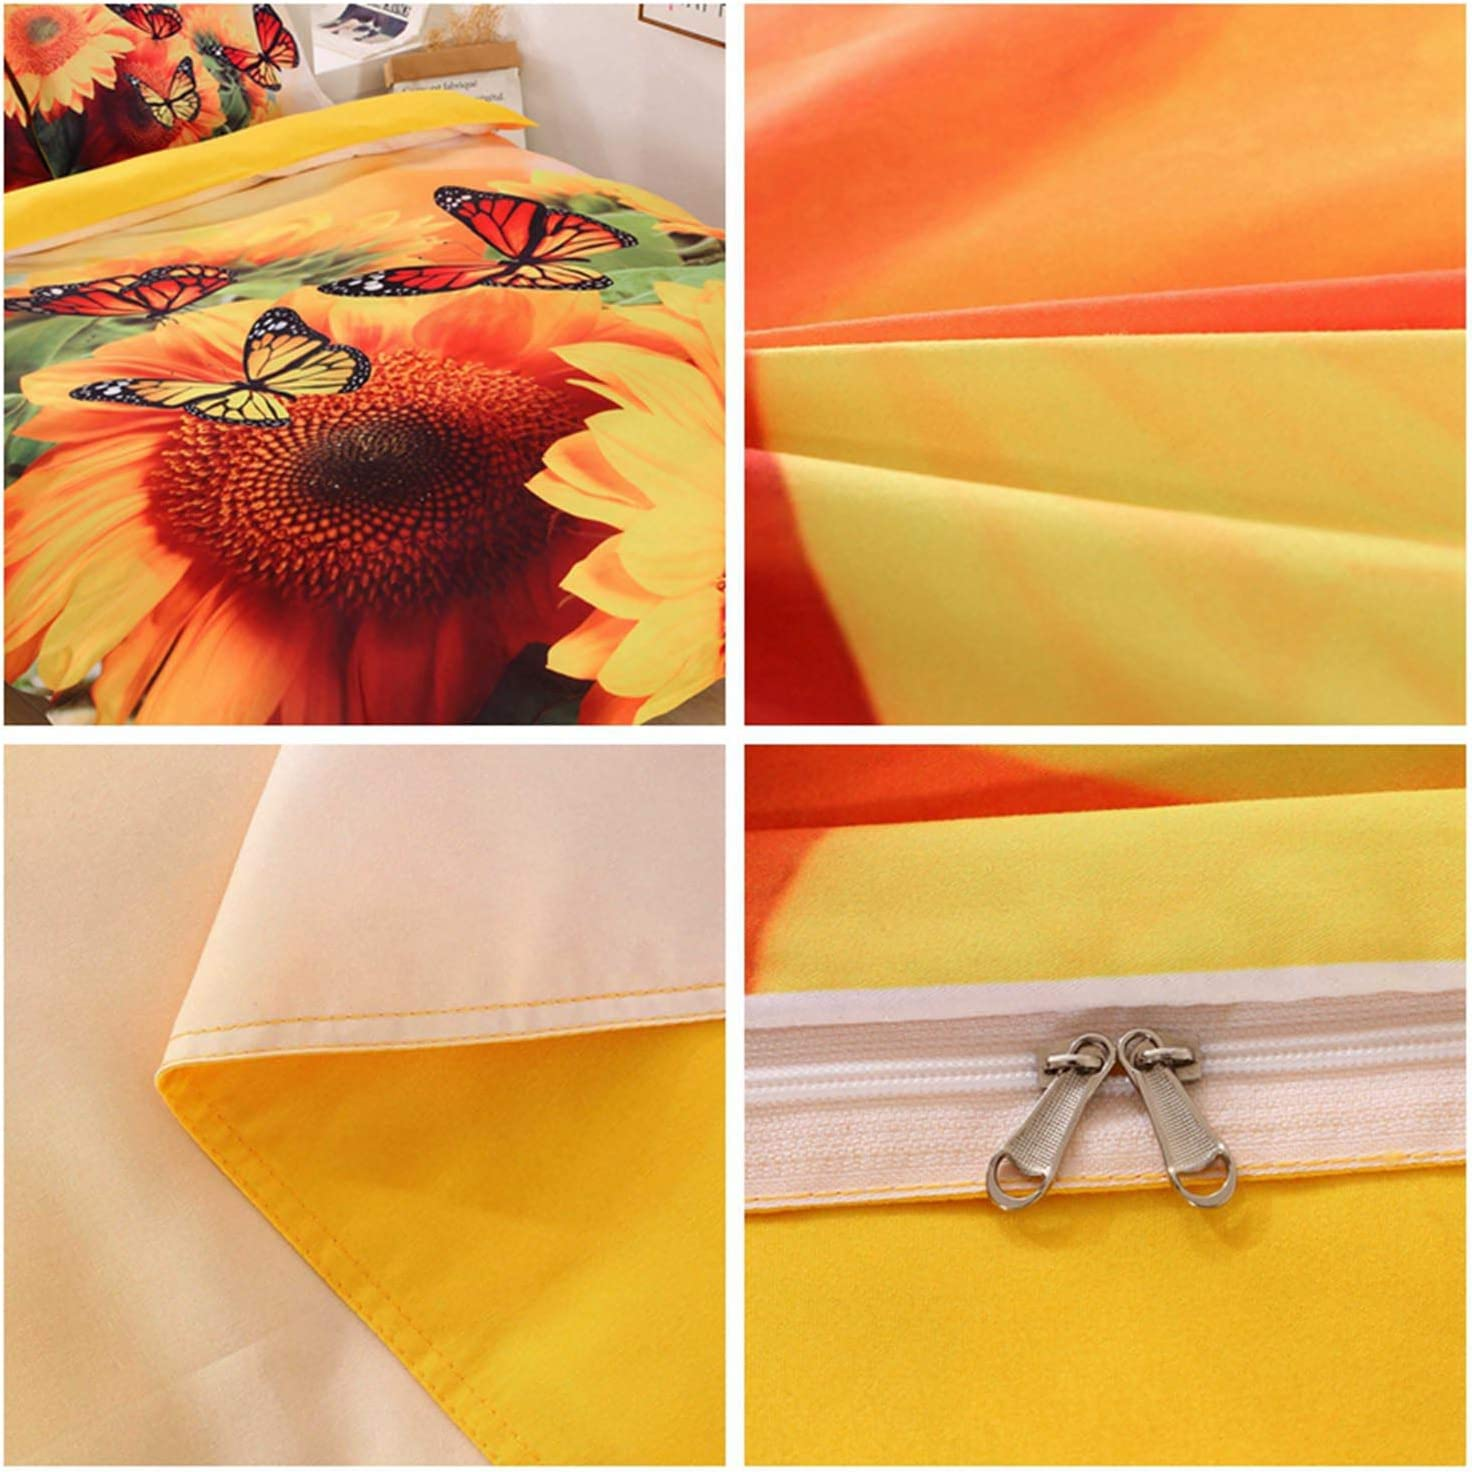 3 Pieces Comforter Cover Bedding Sets with Pillowcases ENCOFT Yellow Sunflower Duvet Cover Sheet Bedding Sets Twin//Full.Queen//King Sunflower, Queen